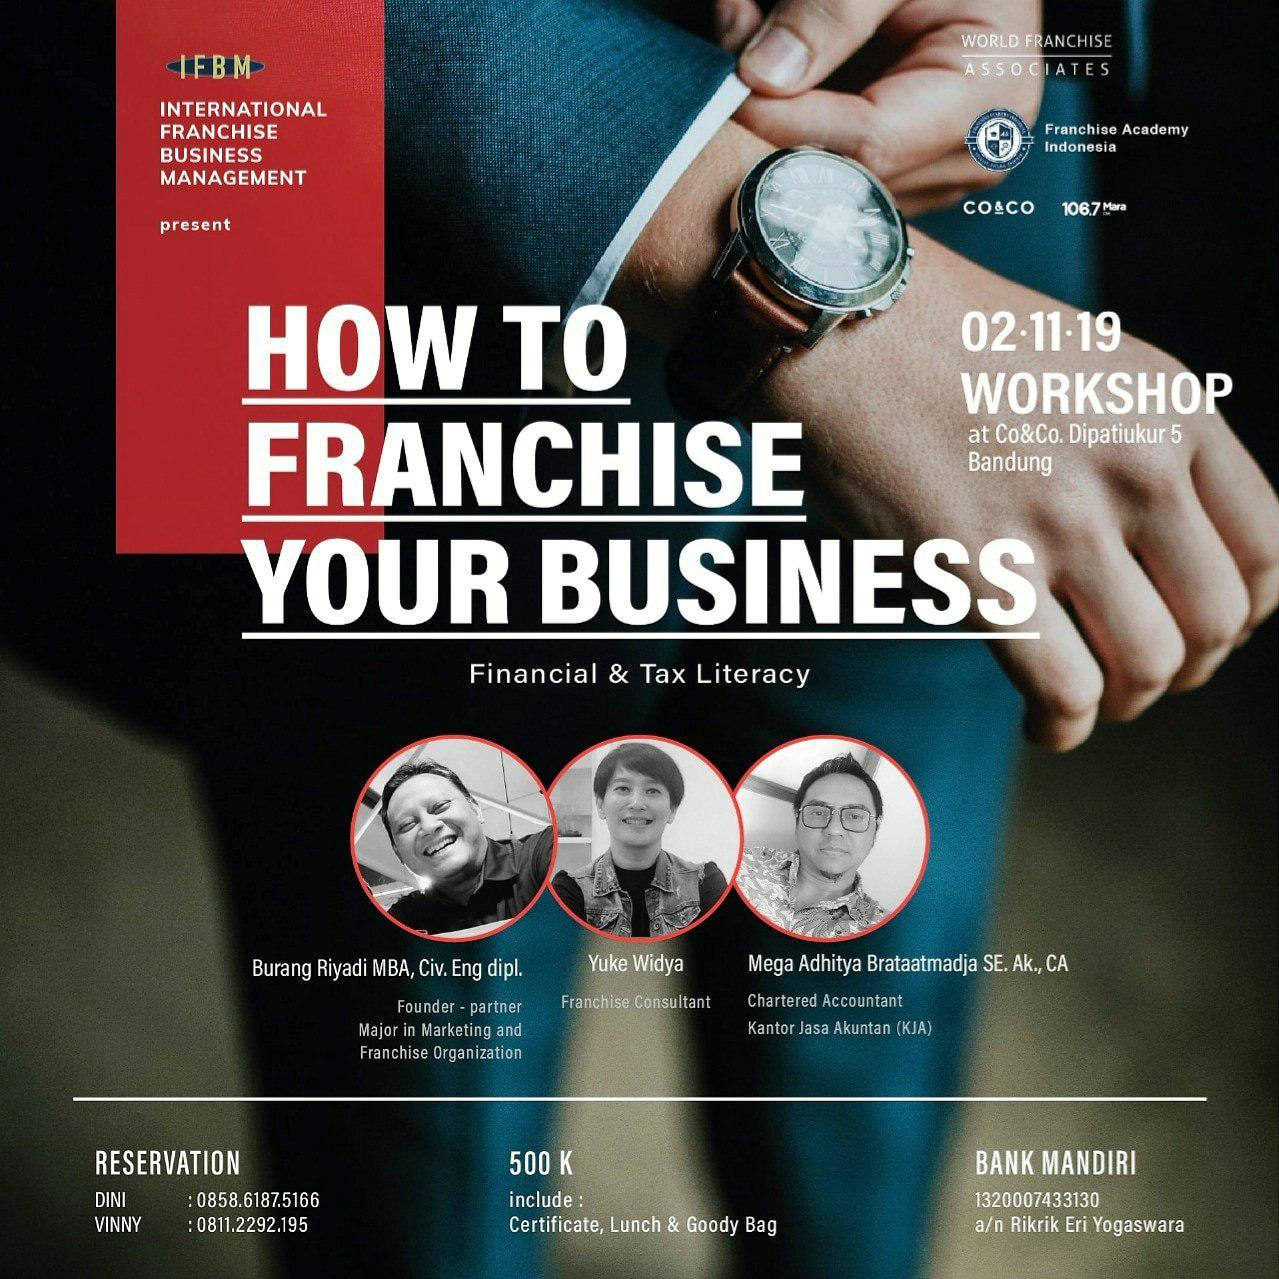 How To Franchise Your Business Co&Co Working Space 2 November 2019